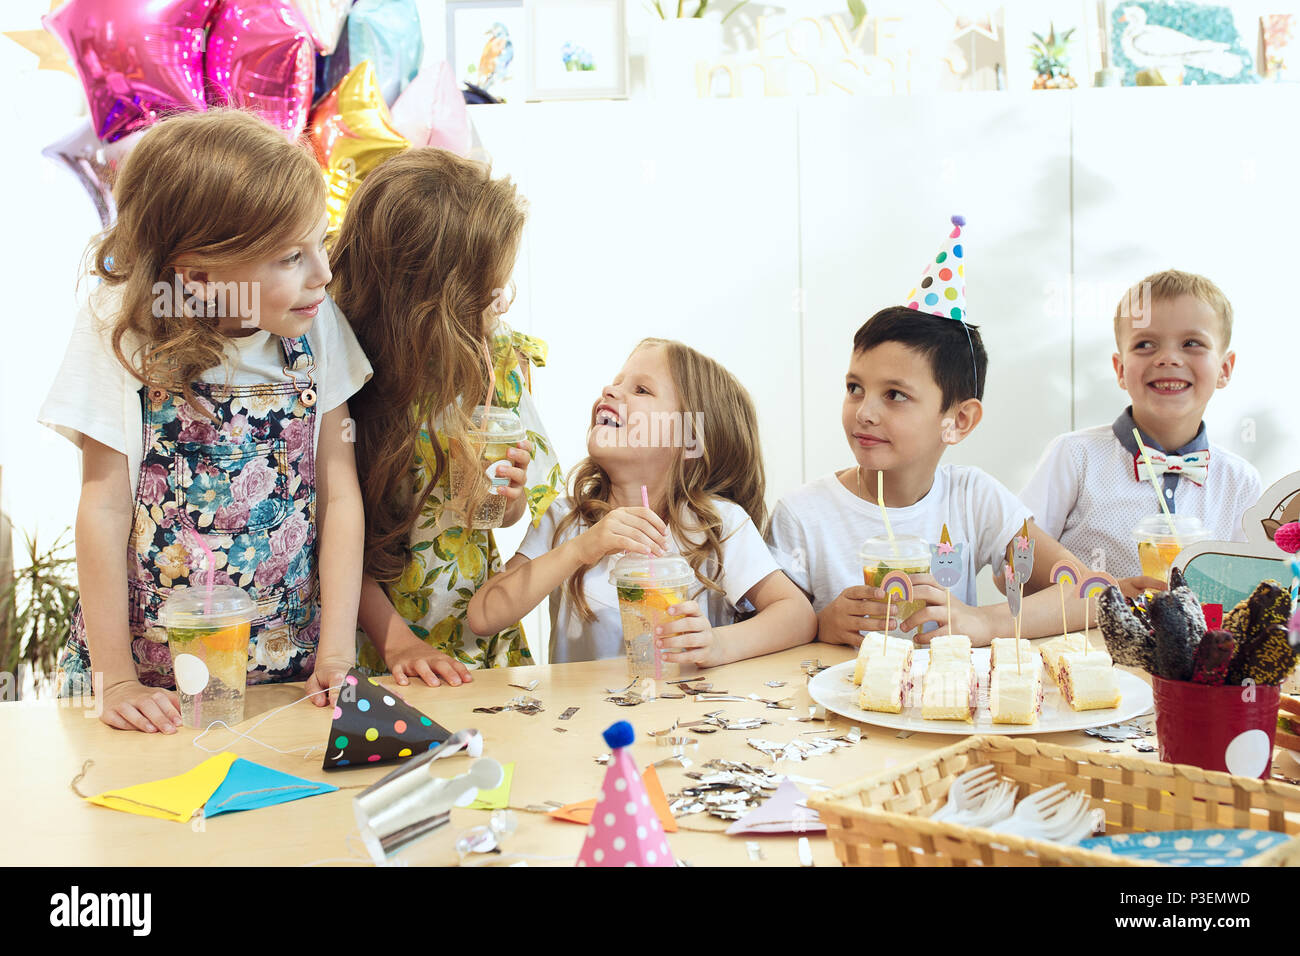 Girl Birthday Decorations Table Setting With Cakes Drinks And Party Gadgets